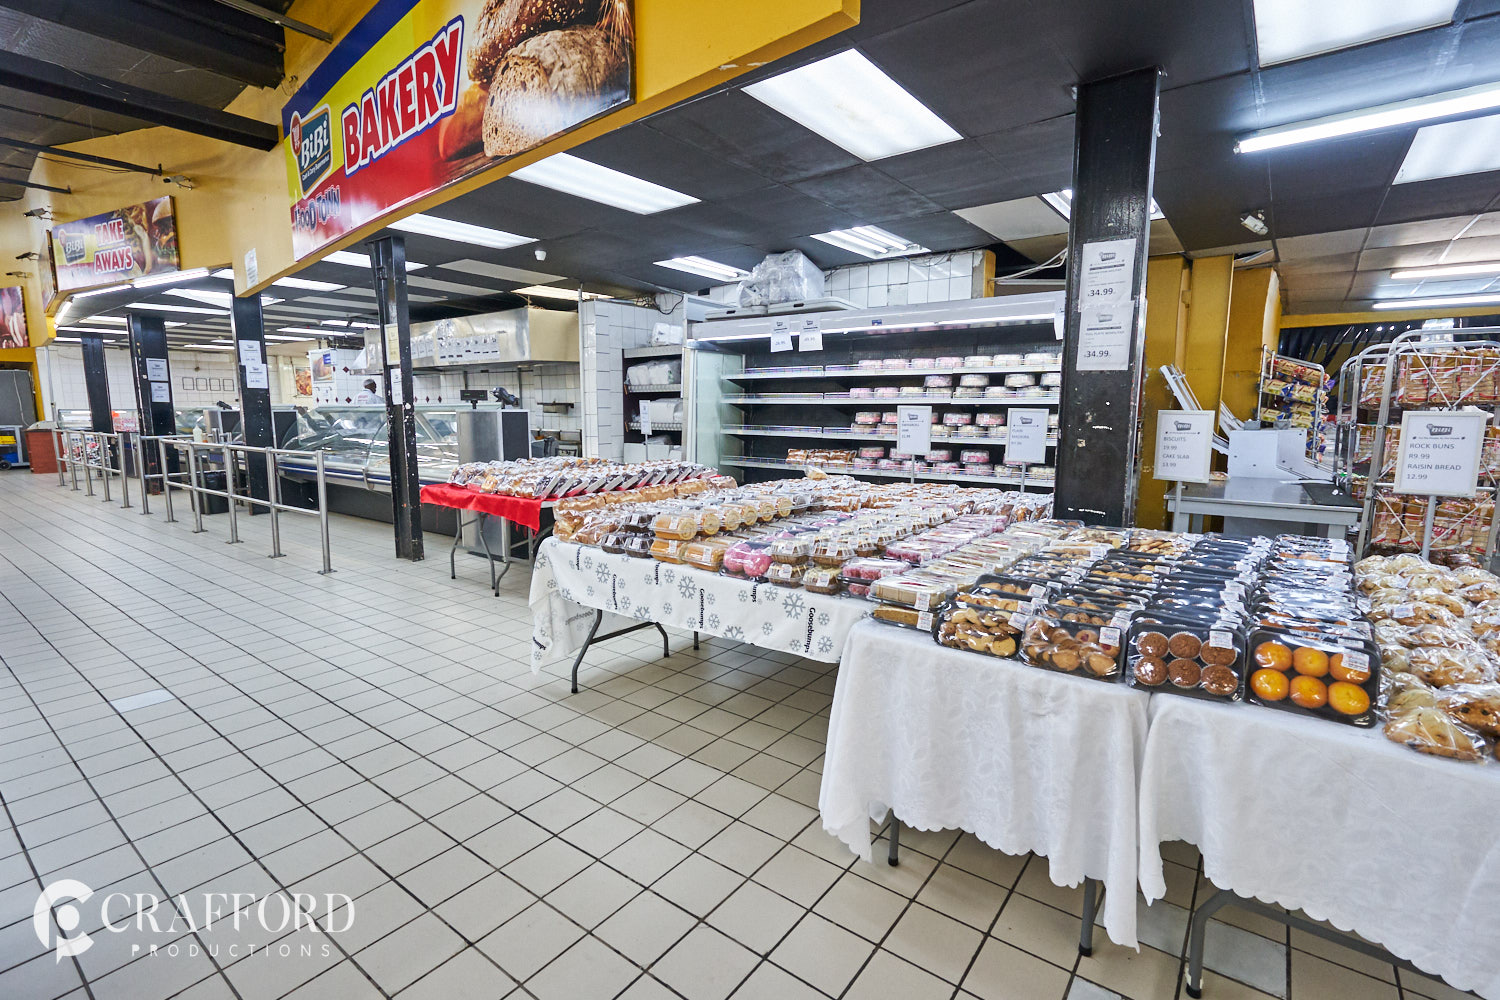 Commercial business photography in Gauteng